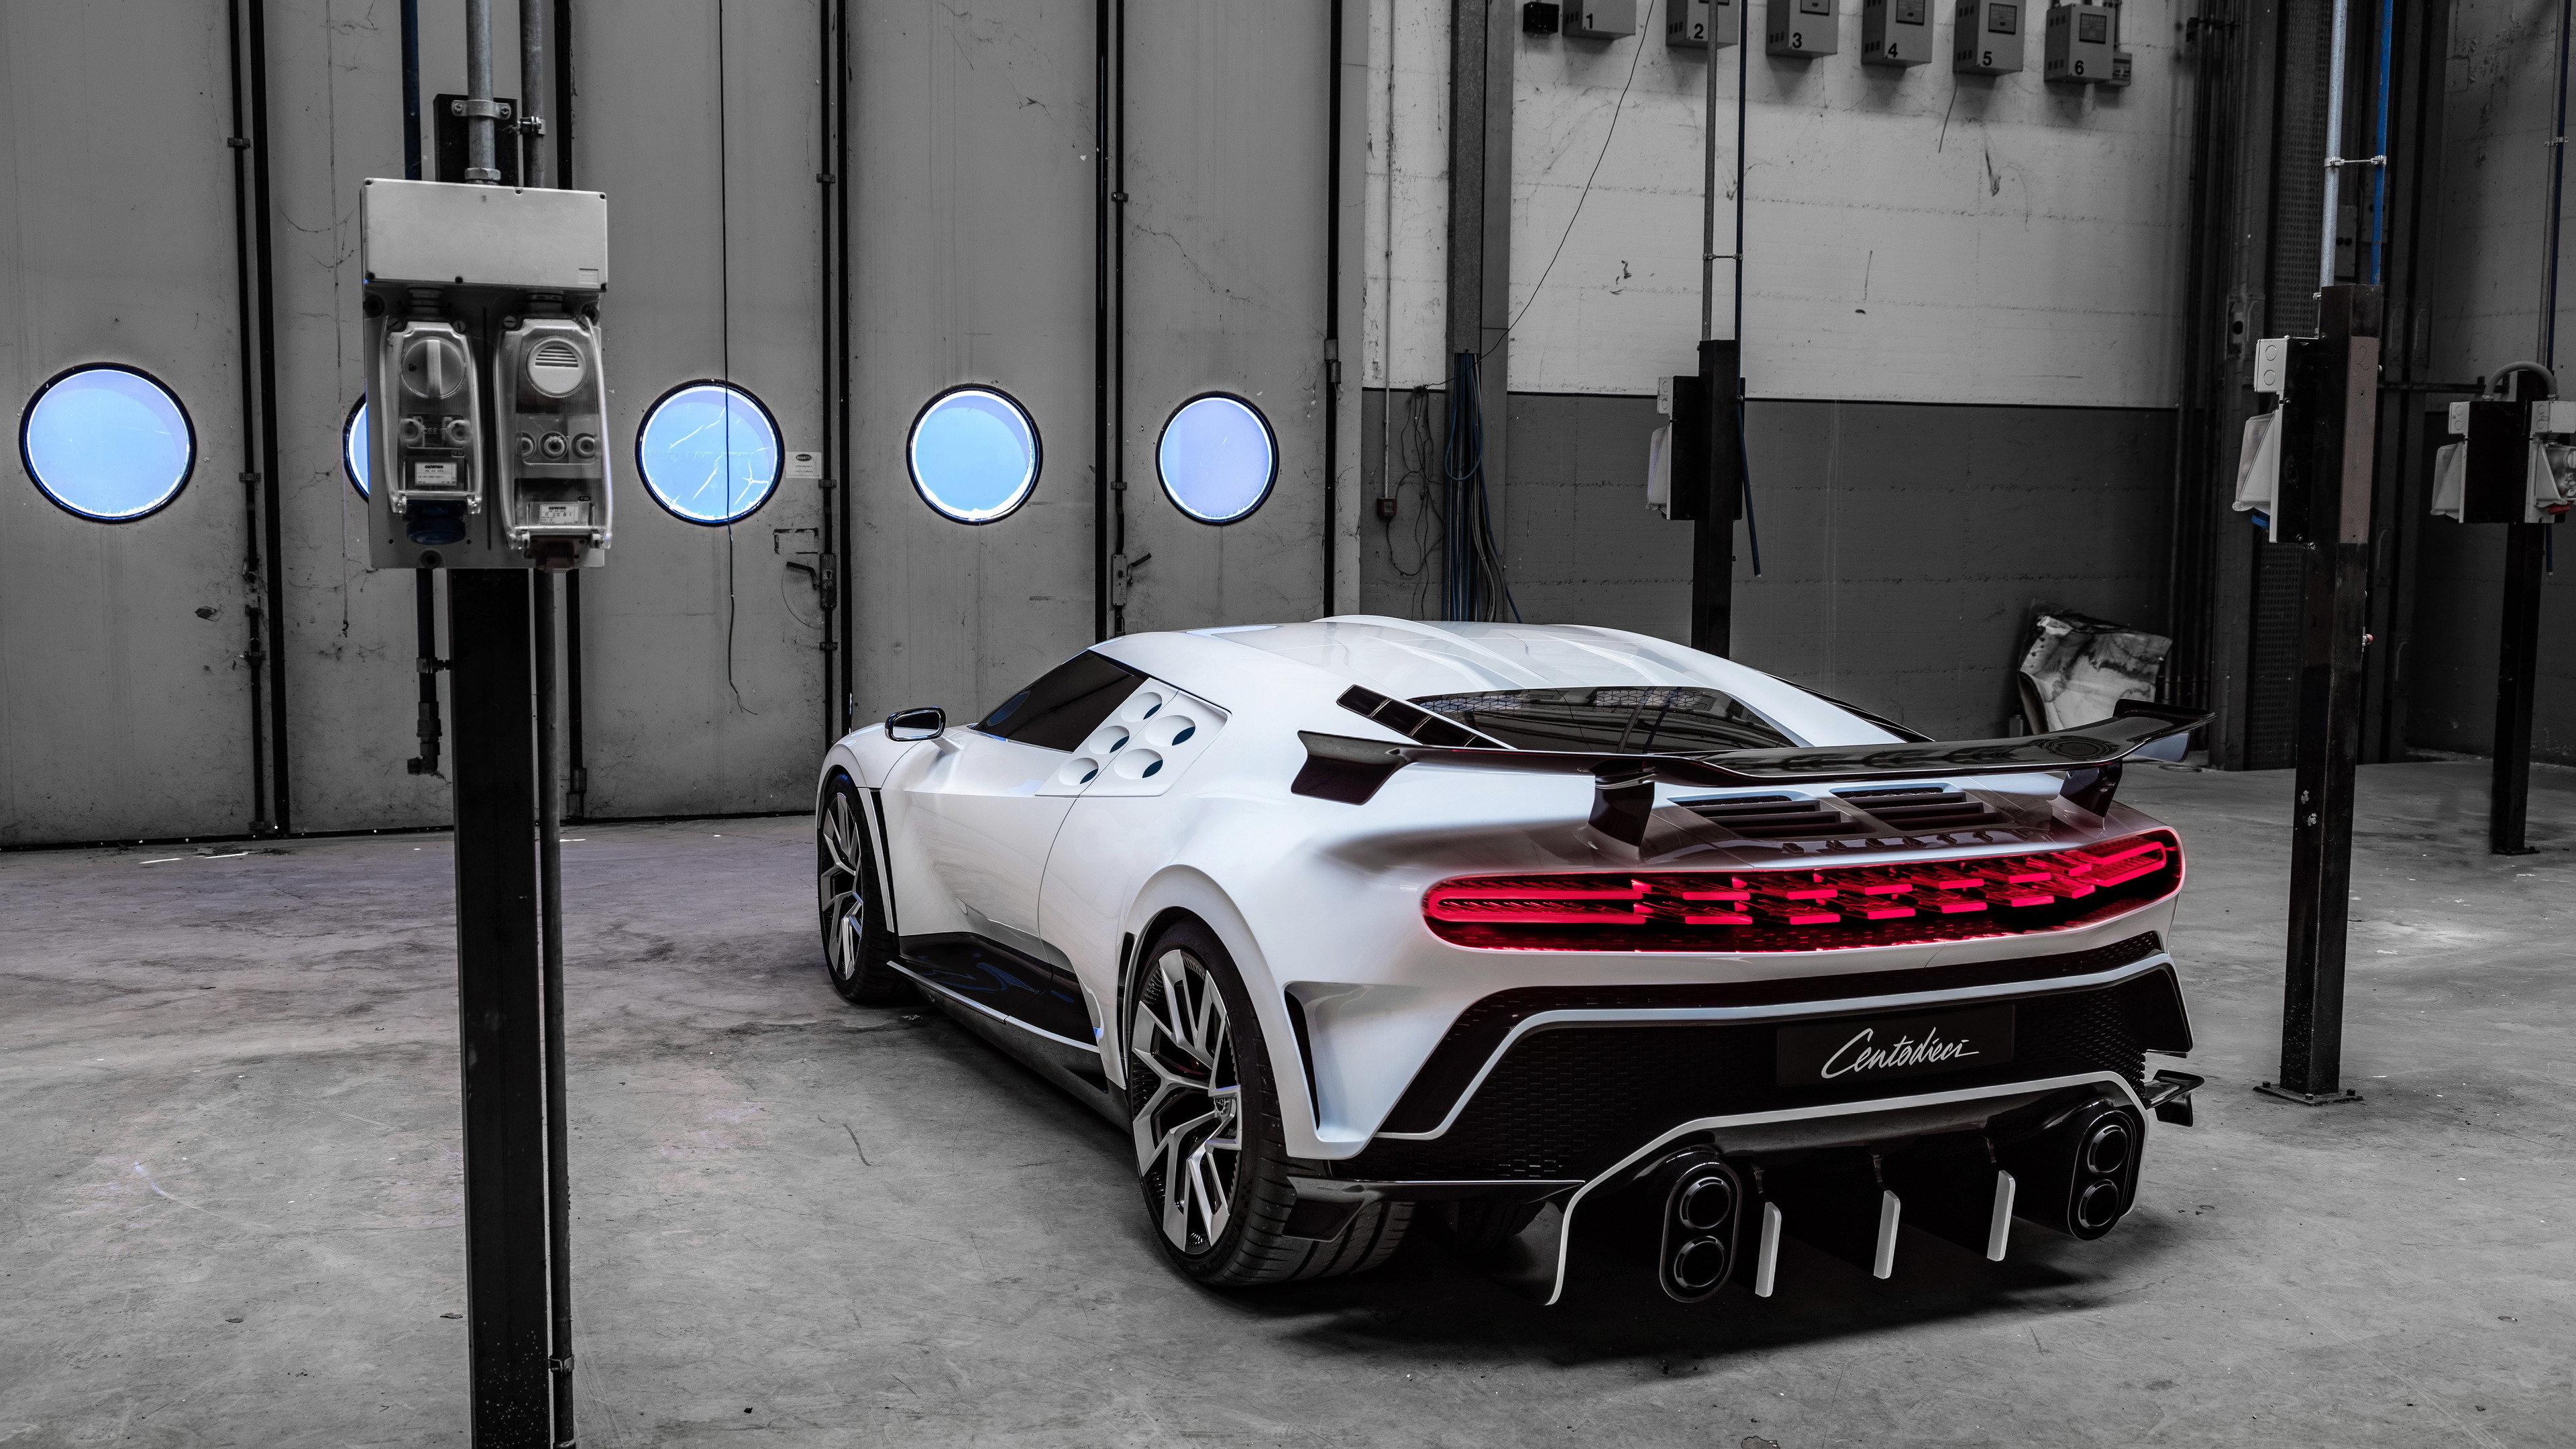 bugatti centodieci 2020 rear 1569189018 - Bugatti Centodieci 2020 Rear - hd-wallpapers, cars wallpapers, bugatti centodieci wallpapers, 8k wallpapers, 5k wallpapers, 4k-wallpapers, 2020 cars wallpapers